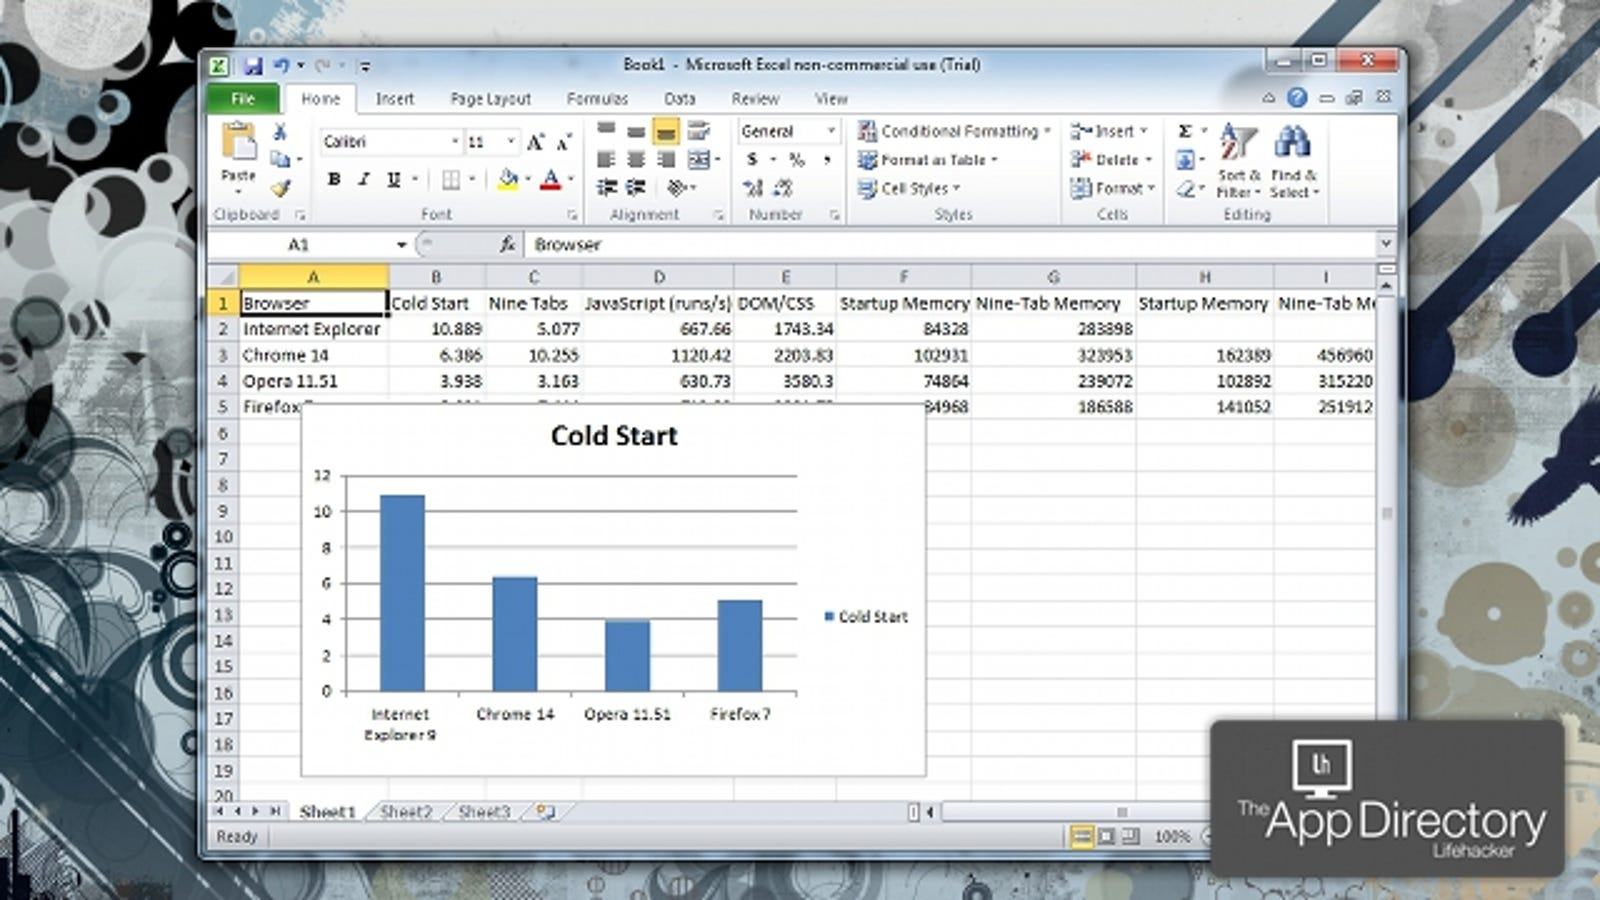 The Best Spreadsheet App for Windows